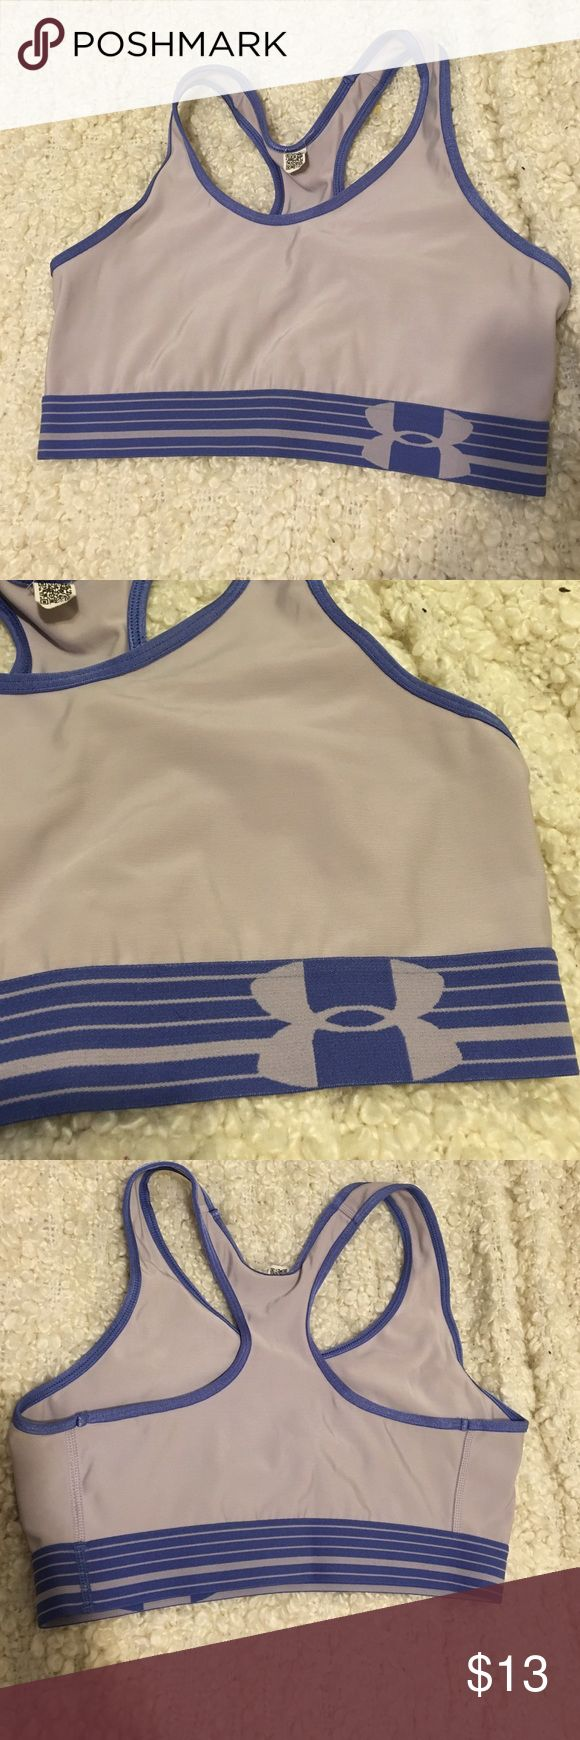 Under armour sports bra Just a little too snug for me! Good condition. Clean. No stains or rips ☺️🙌🏼 ask any questions you have! Price relatively firm unless bundled. If you would like to bundle I may be willing to increase the bundle discount depending on the items you are interested in. Please leave a comment! The tag is gone but I only typically buy M sports bras. The material is silky / soft feeling and the bottom is a thick elastic band material. Under Armour Intimates & Sleepwear…